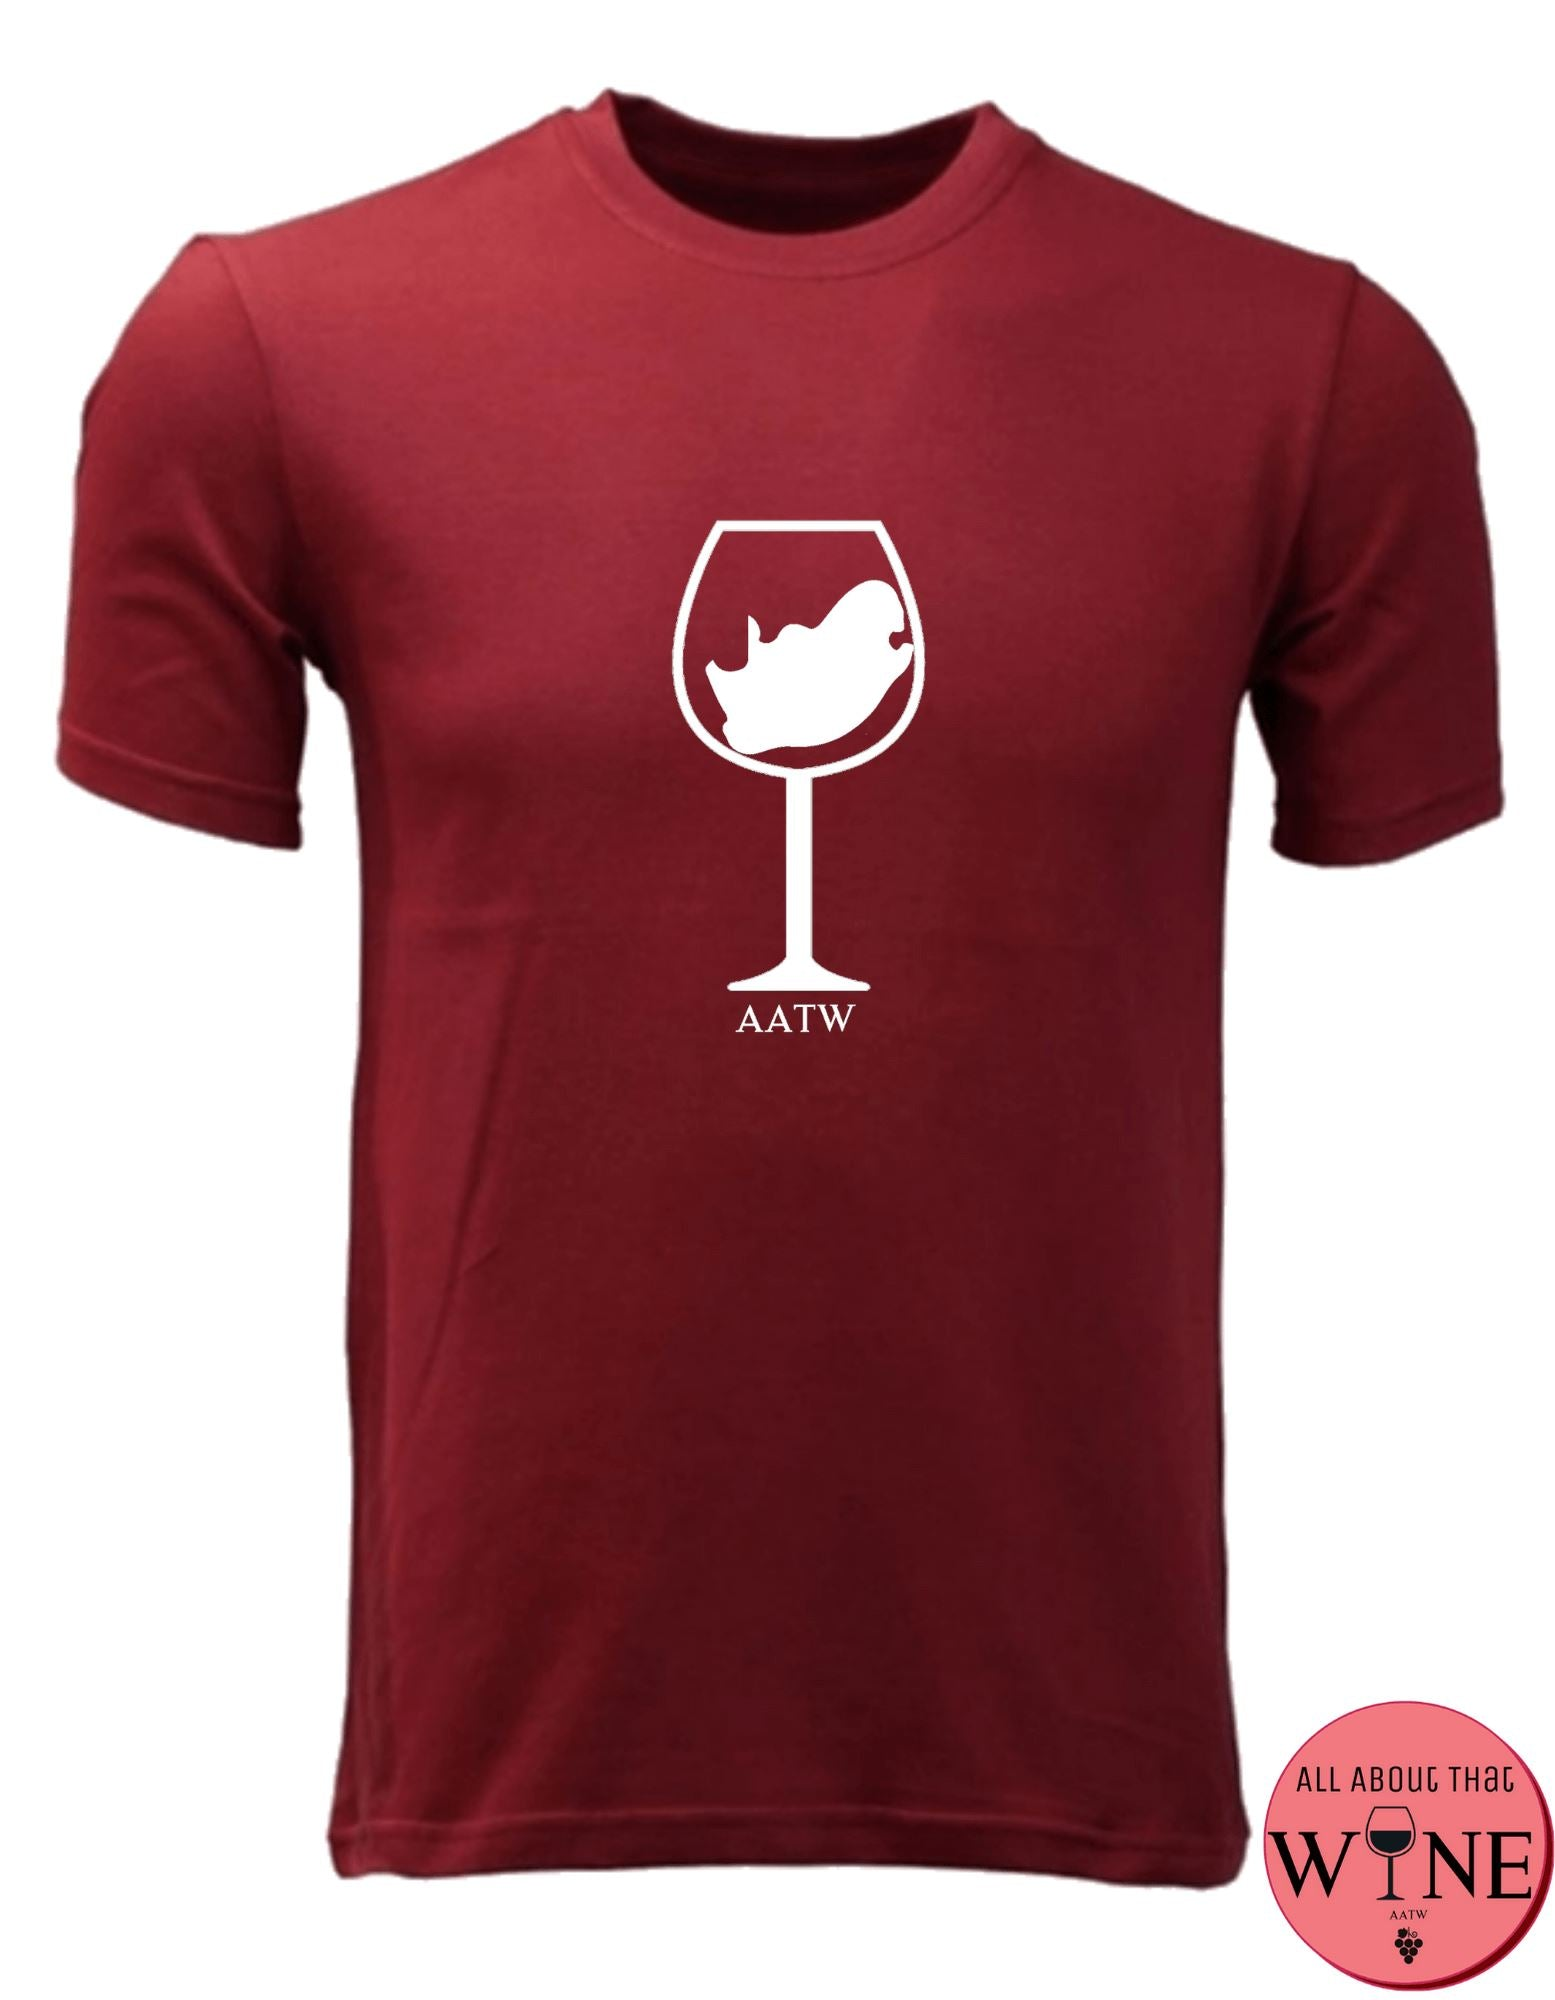 SA Wine Glass - Unisex/Male S Deep red with white